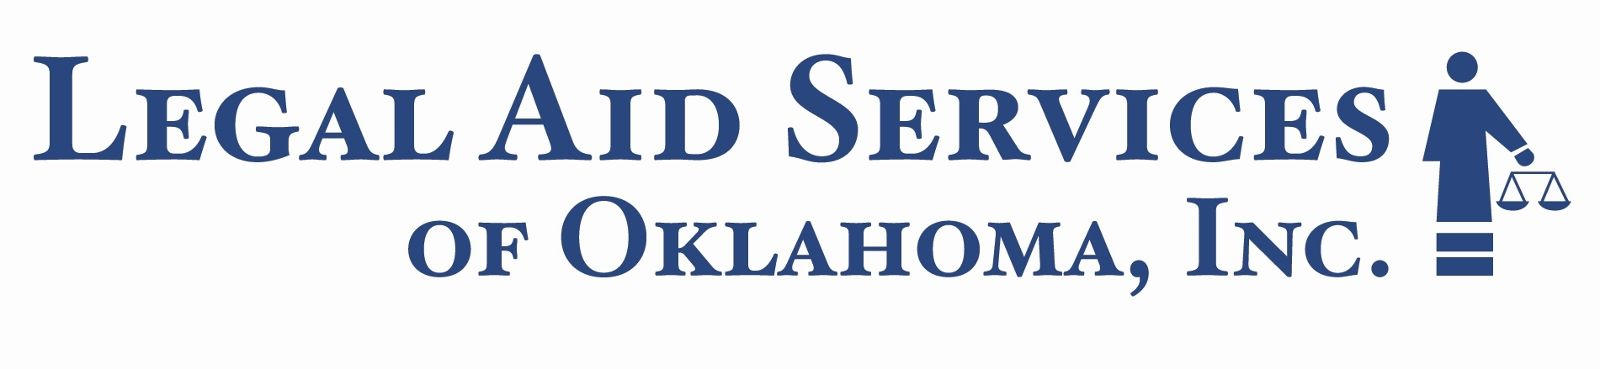 Image: Legal Aid Services of Oklahoma logo